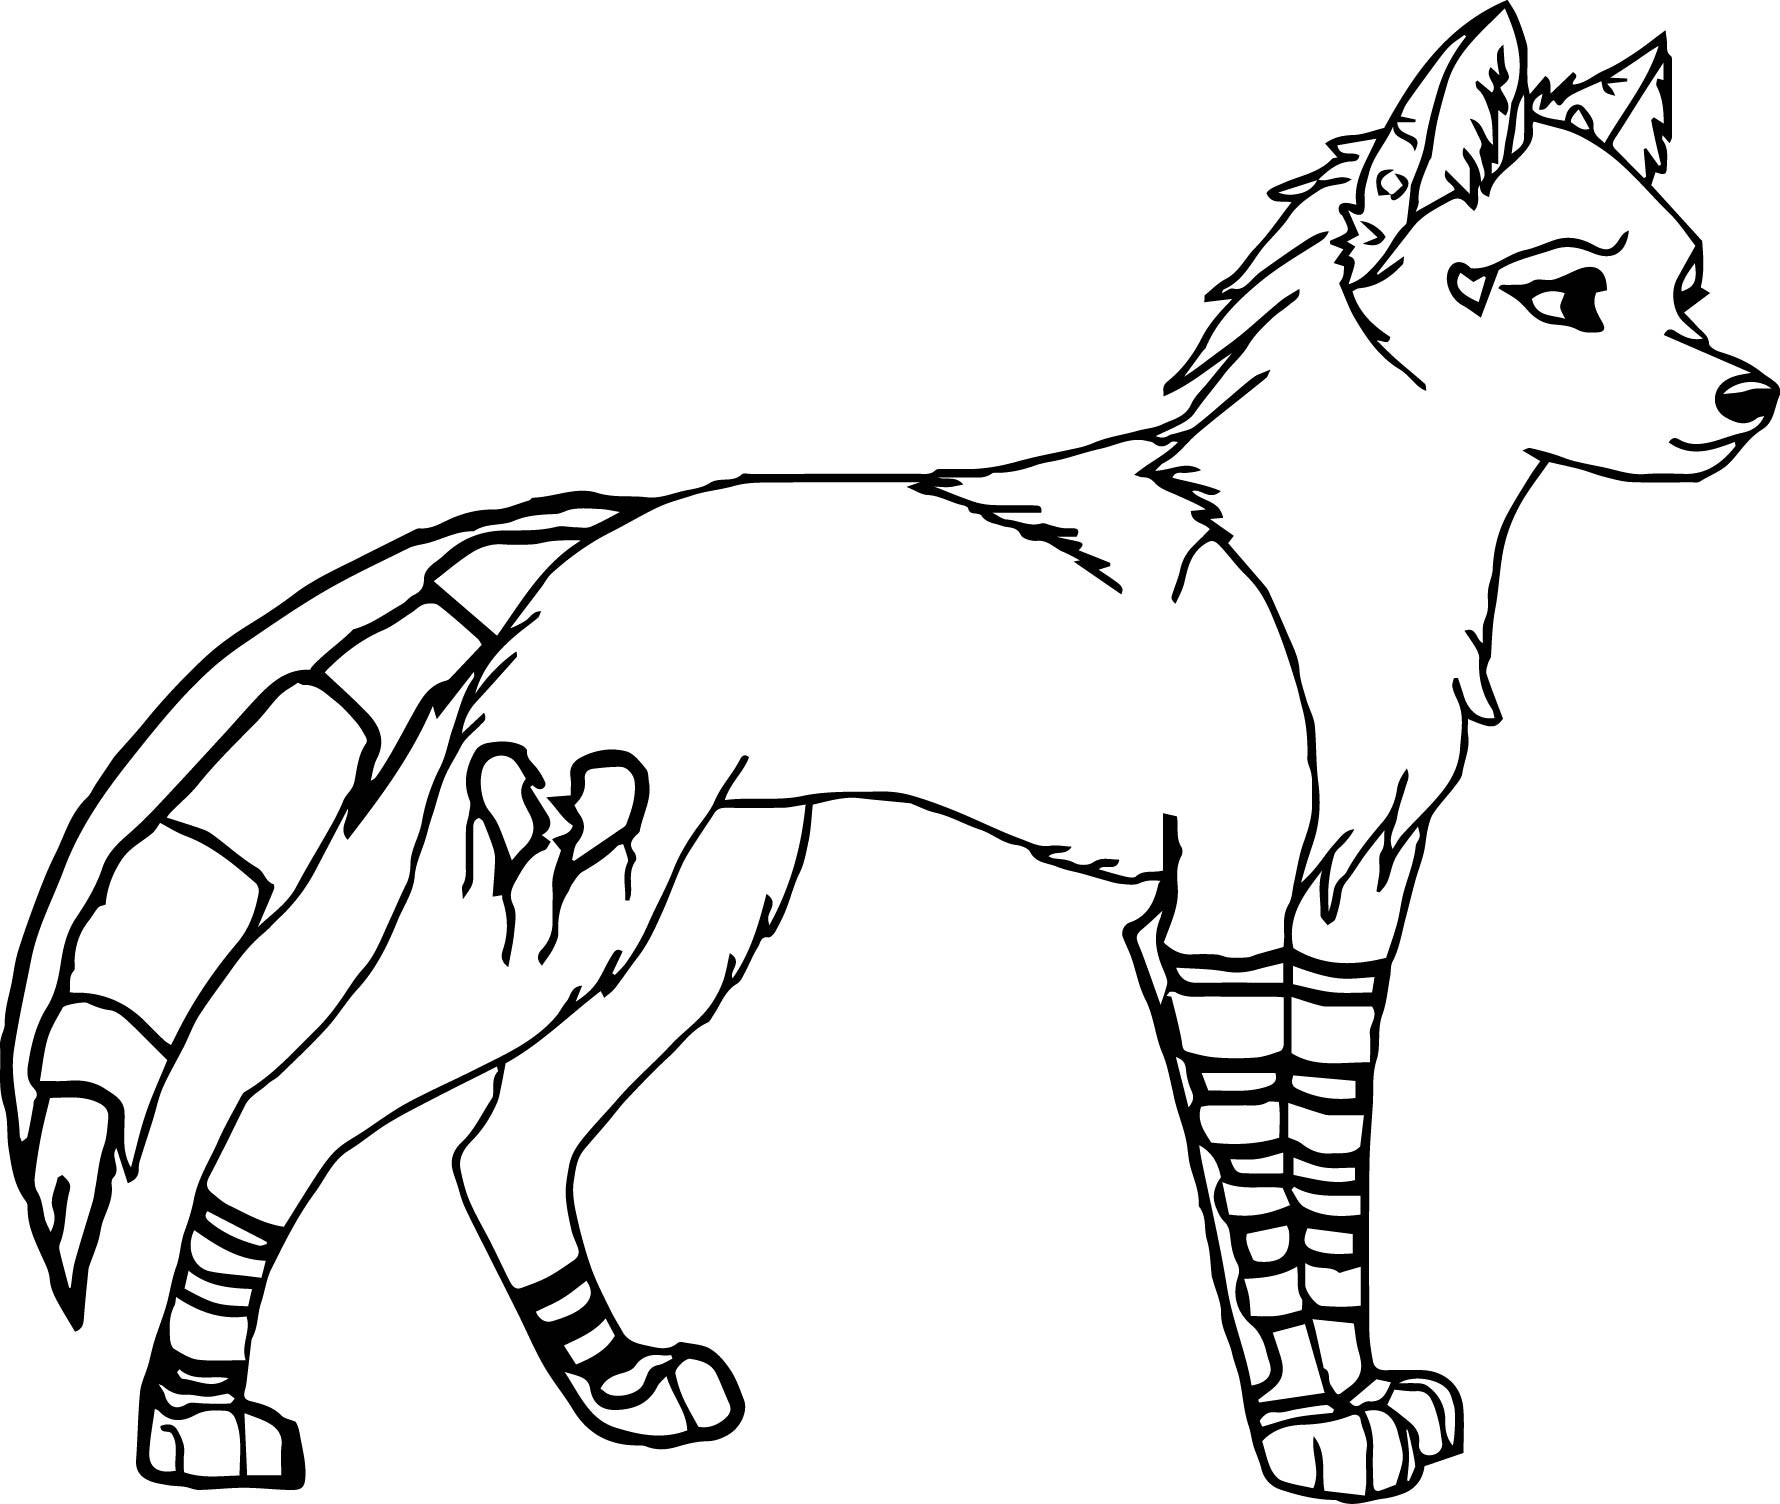 1780x1504 Baby Fox Coloring Pages Lovely Anime Fox Drawings Coloring